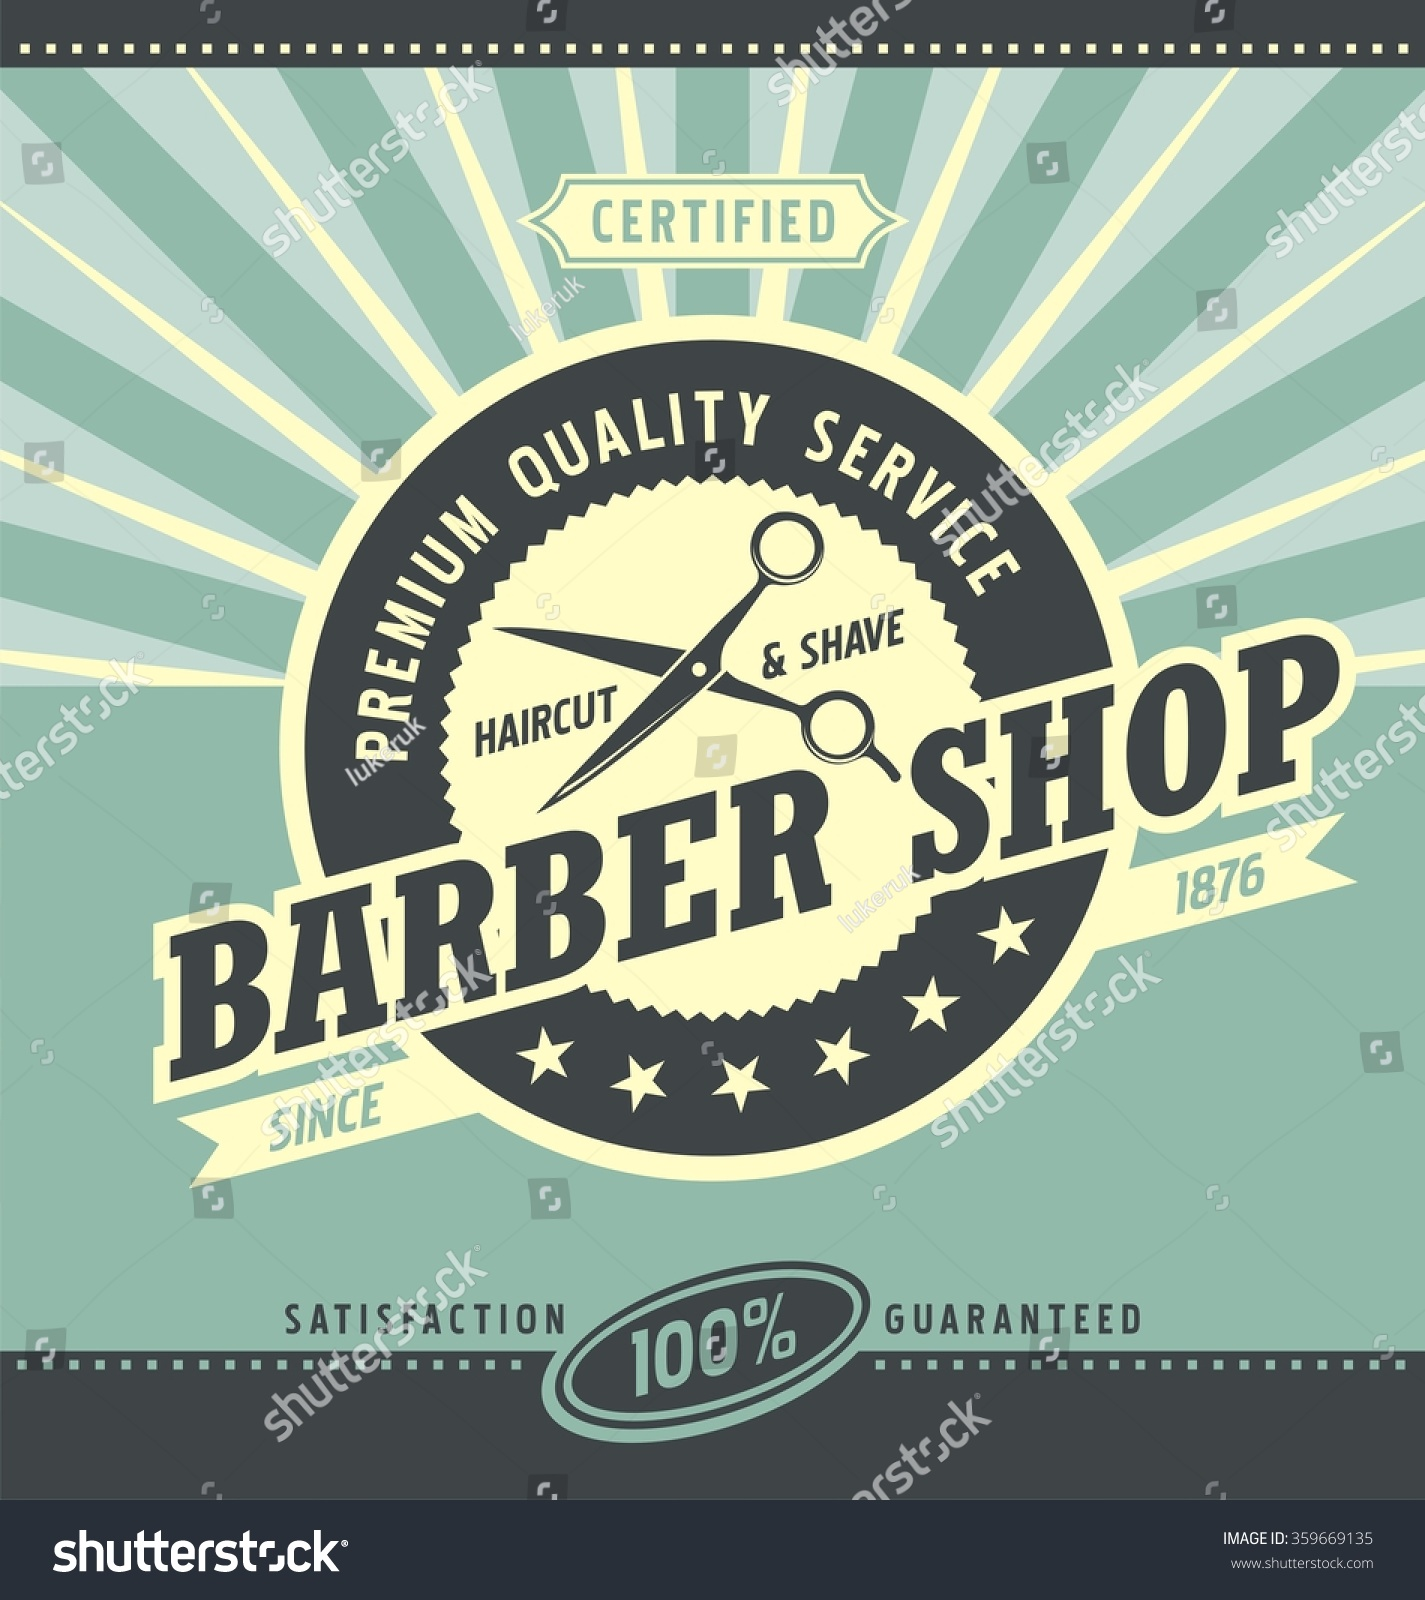 70s poster design template - Barber Shop Retro Poster Design Template Haircut And Shaving Promotional Banner Graphic Hair Styles